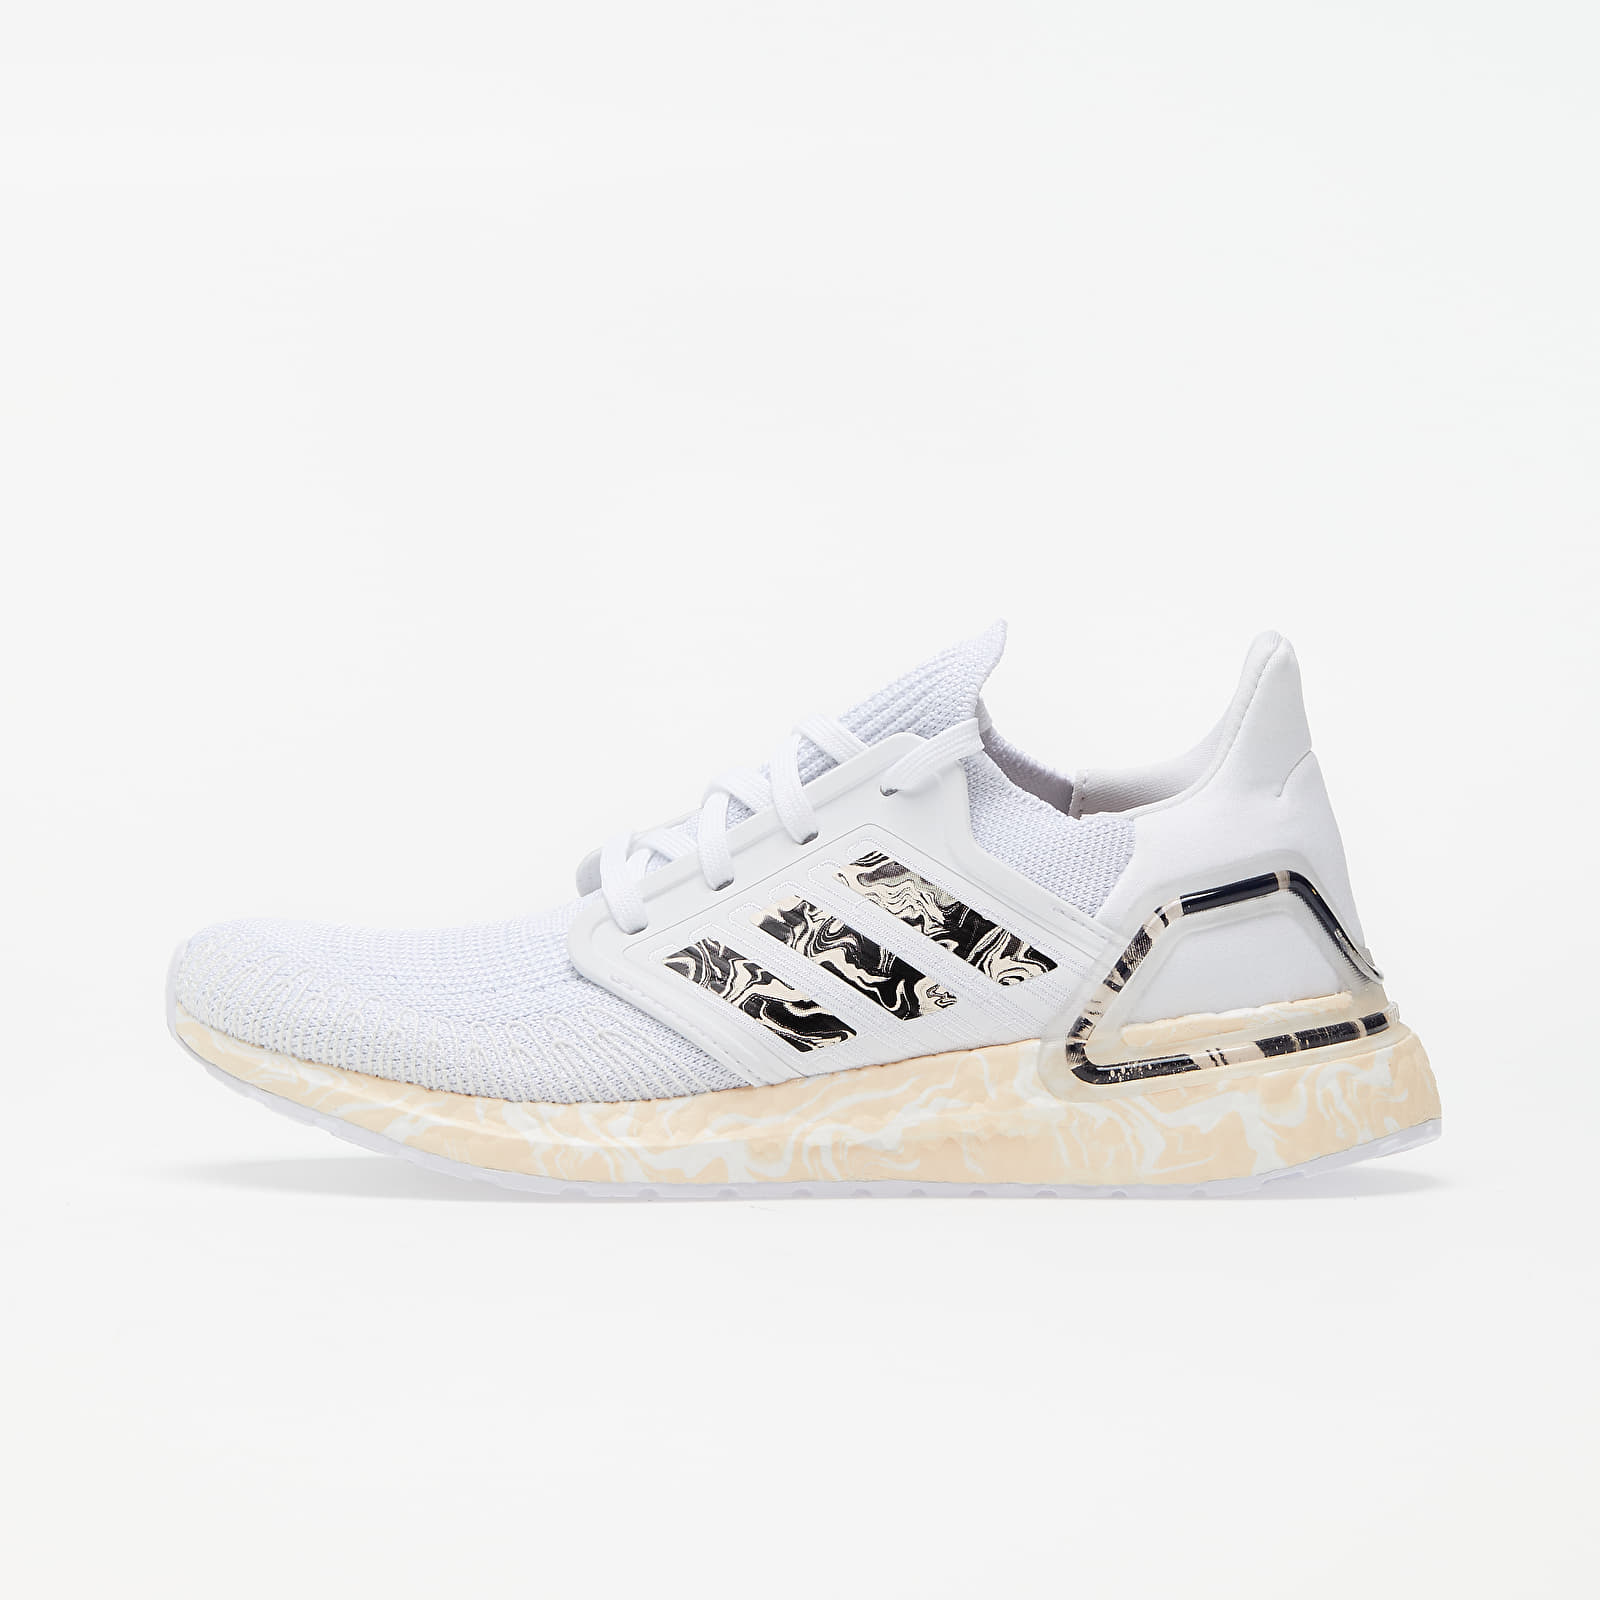 Chaussures et baskets femme adidas UltraBOOST 20 W Ftw White/ Pink Tint/ Core Black